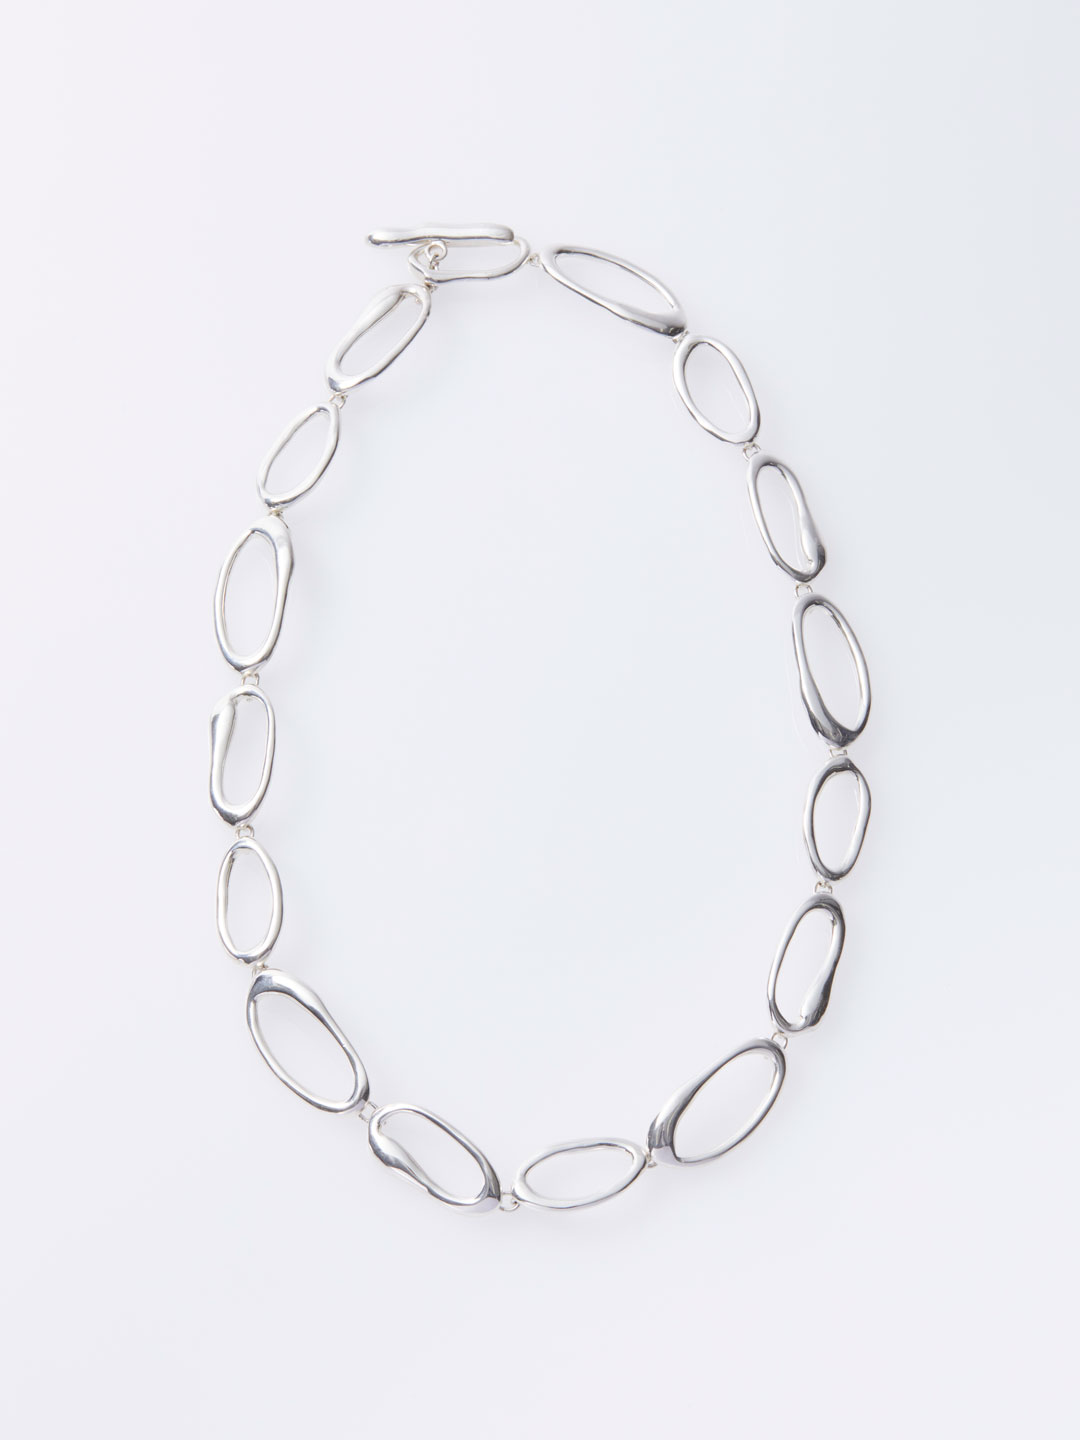 Hand Formed Mini Oval Chain Necklace - Silver